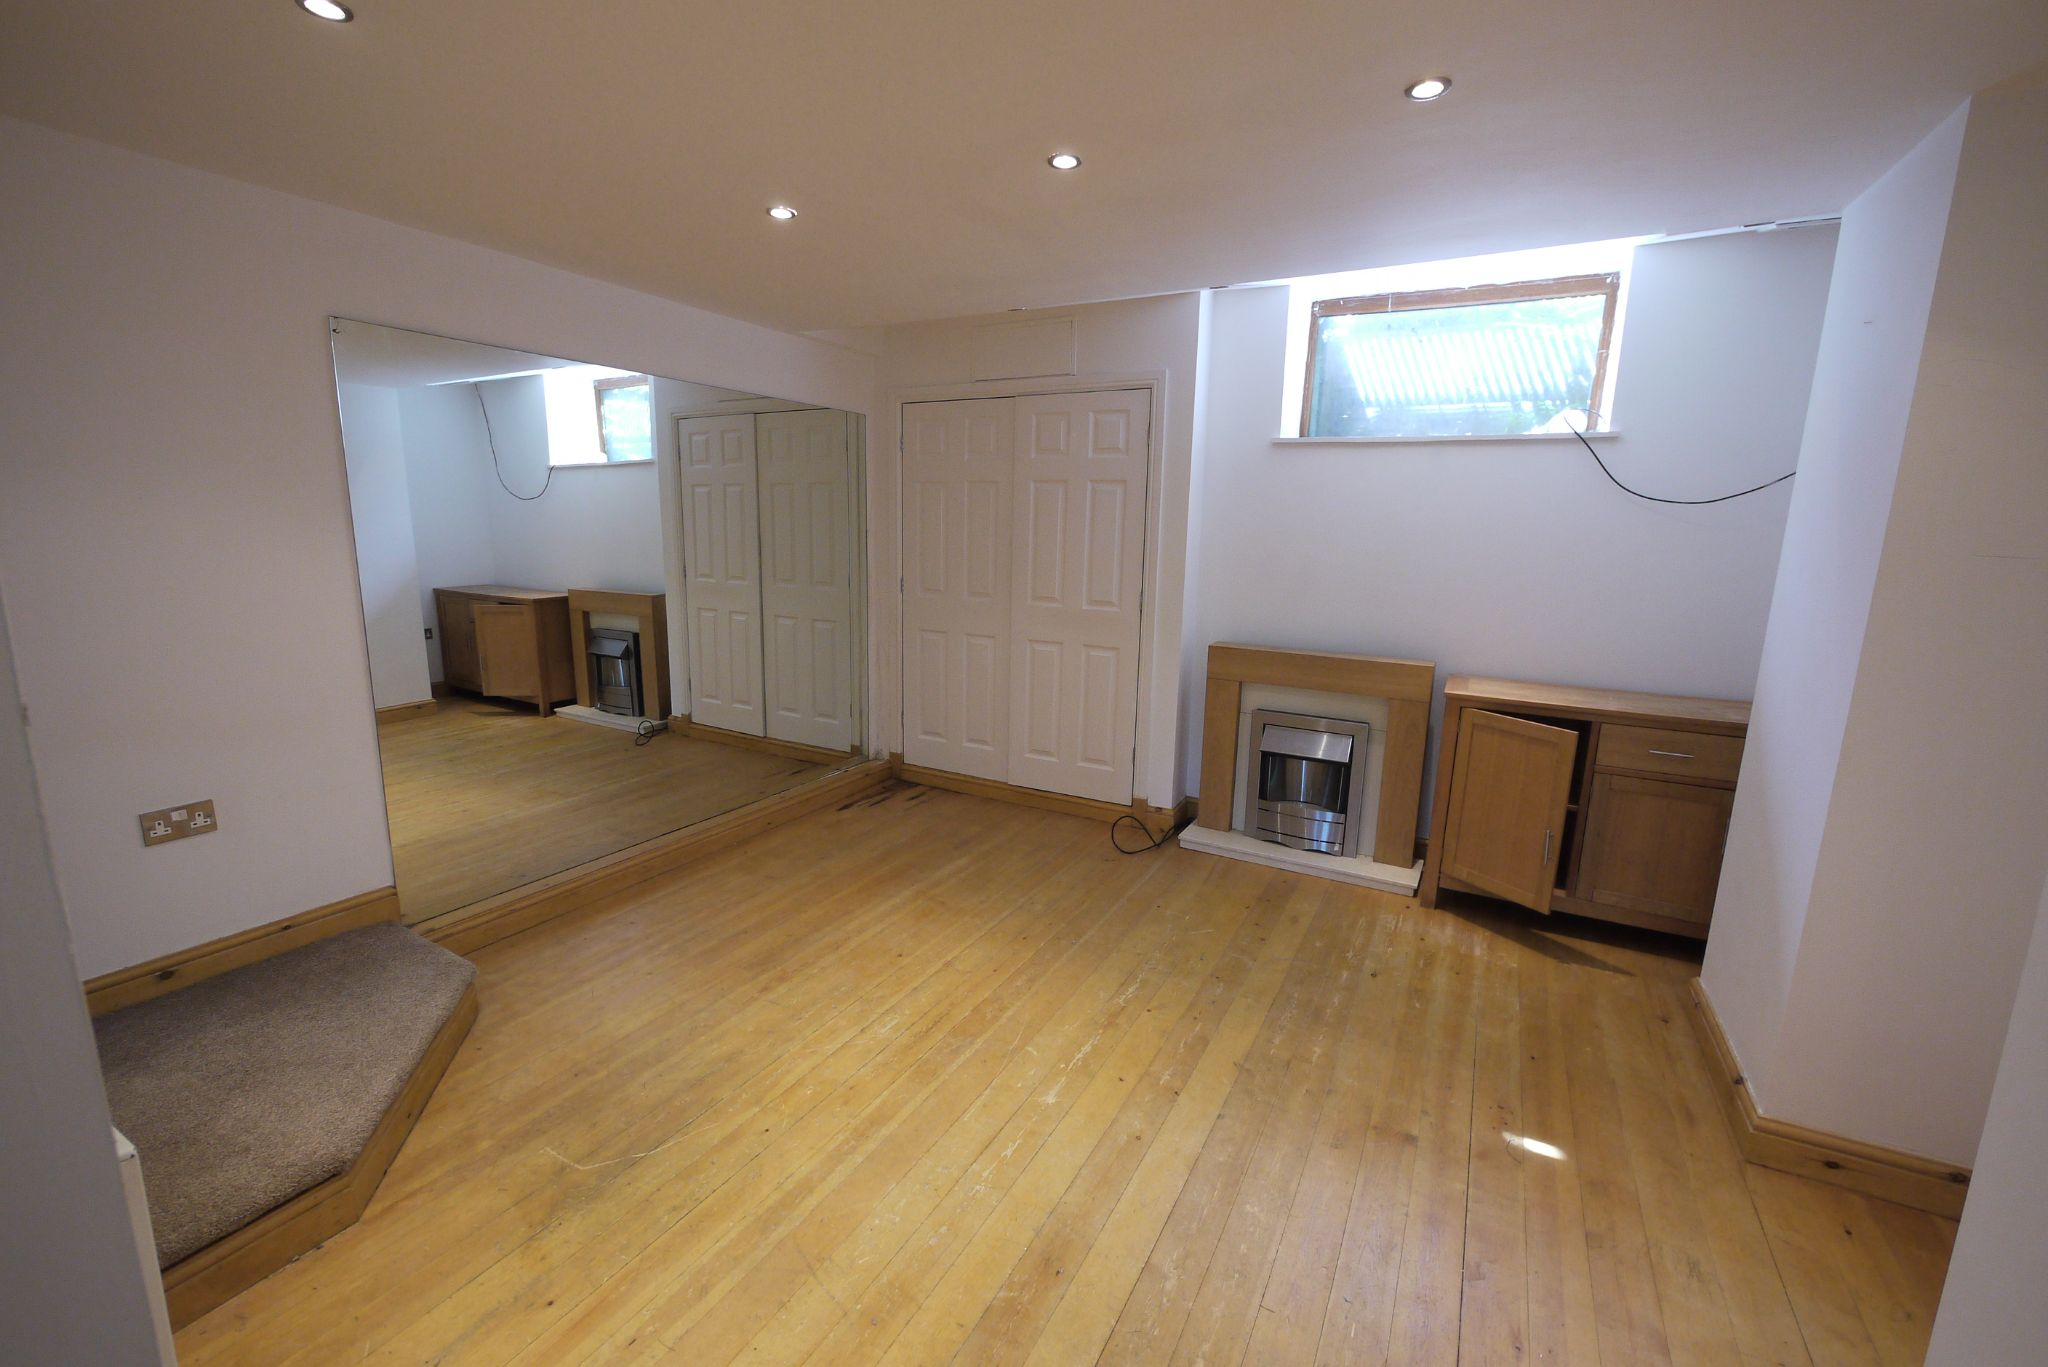 3 bedroom mid terraced house SSTC in Bradford - Photograph 5.